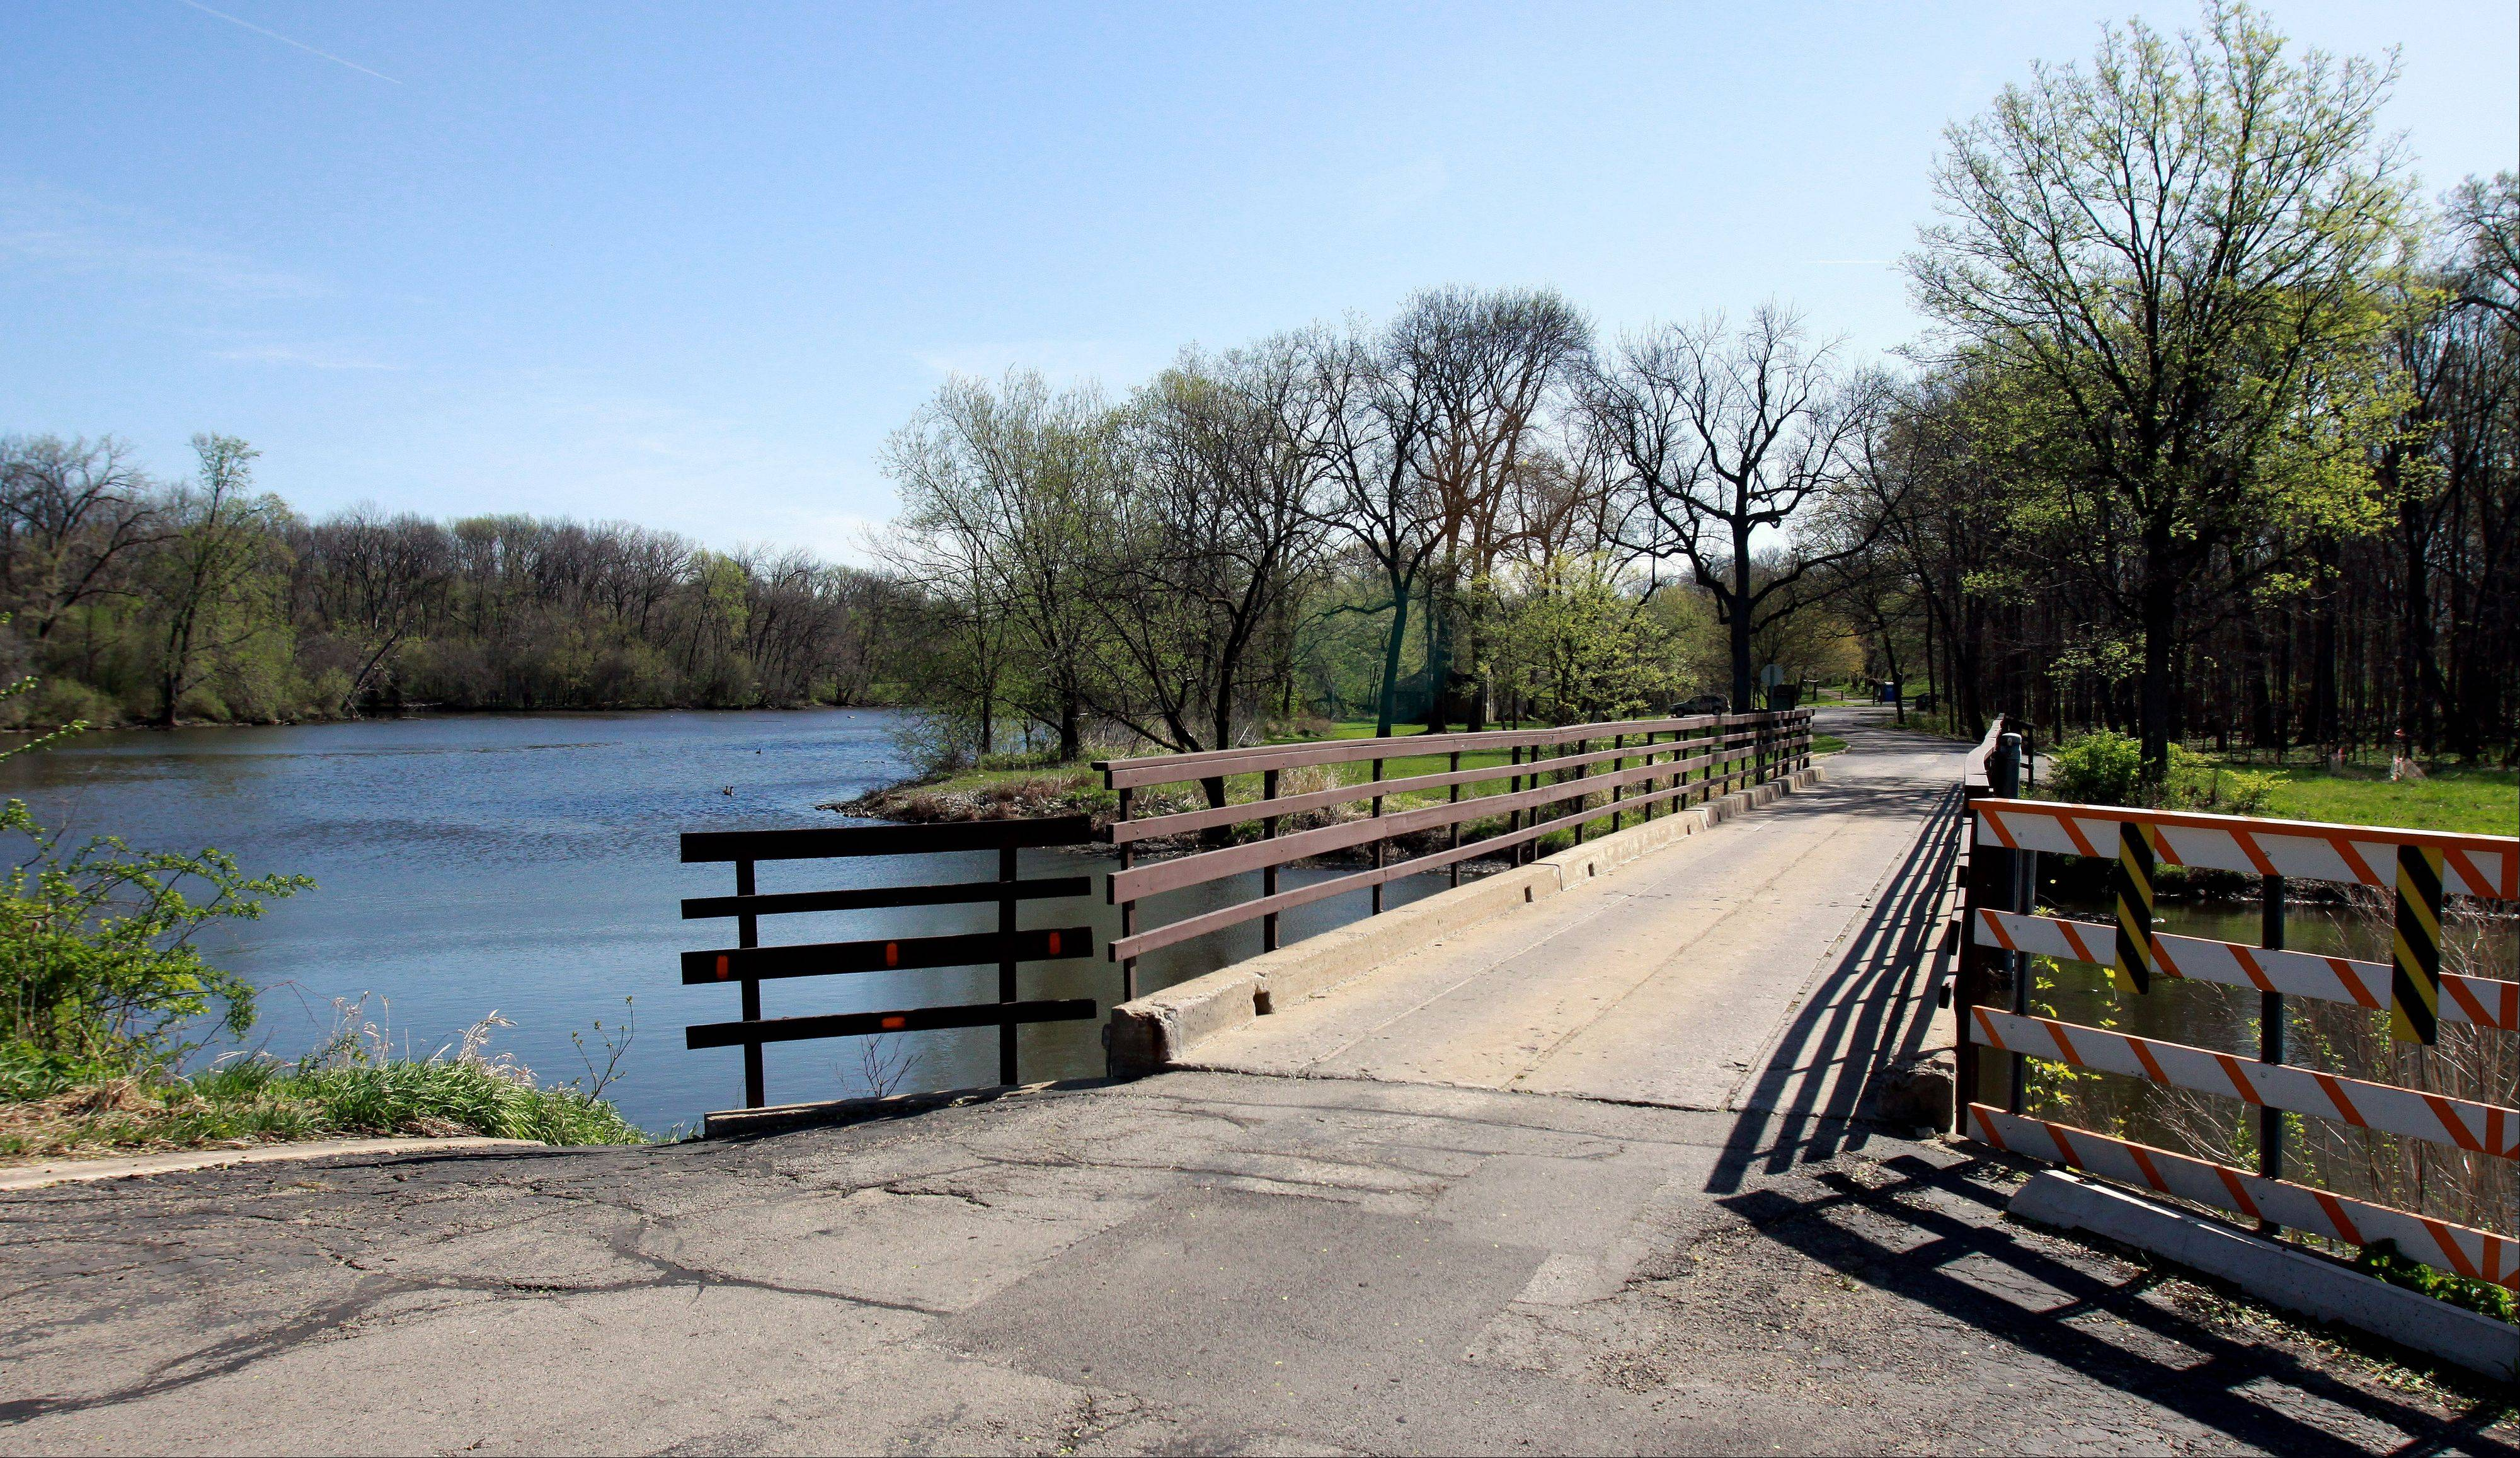 The northern portion of the McDowell Grove Forest Preserve near Naperville has reopened following completion of remedial work along the West Branch of the DuPage River.